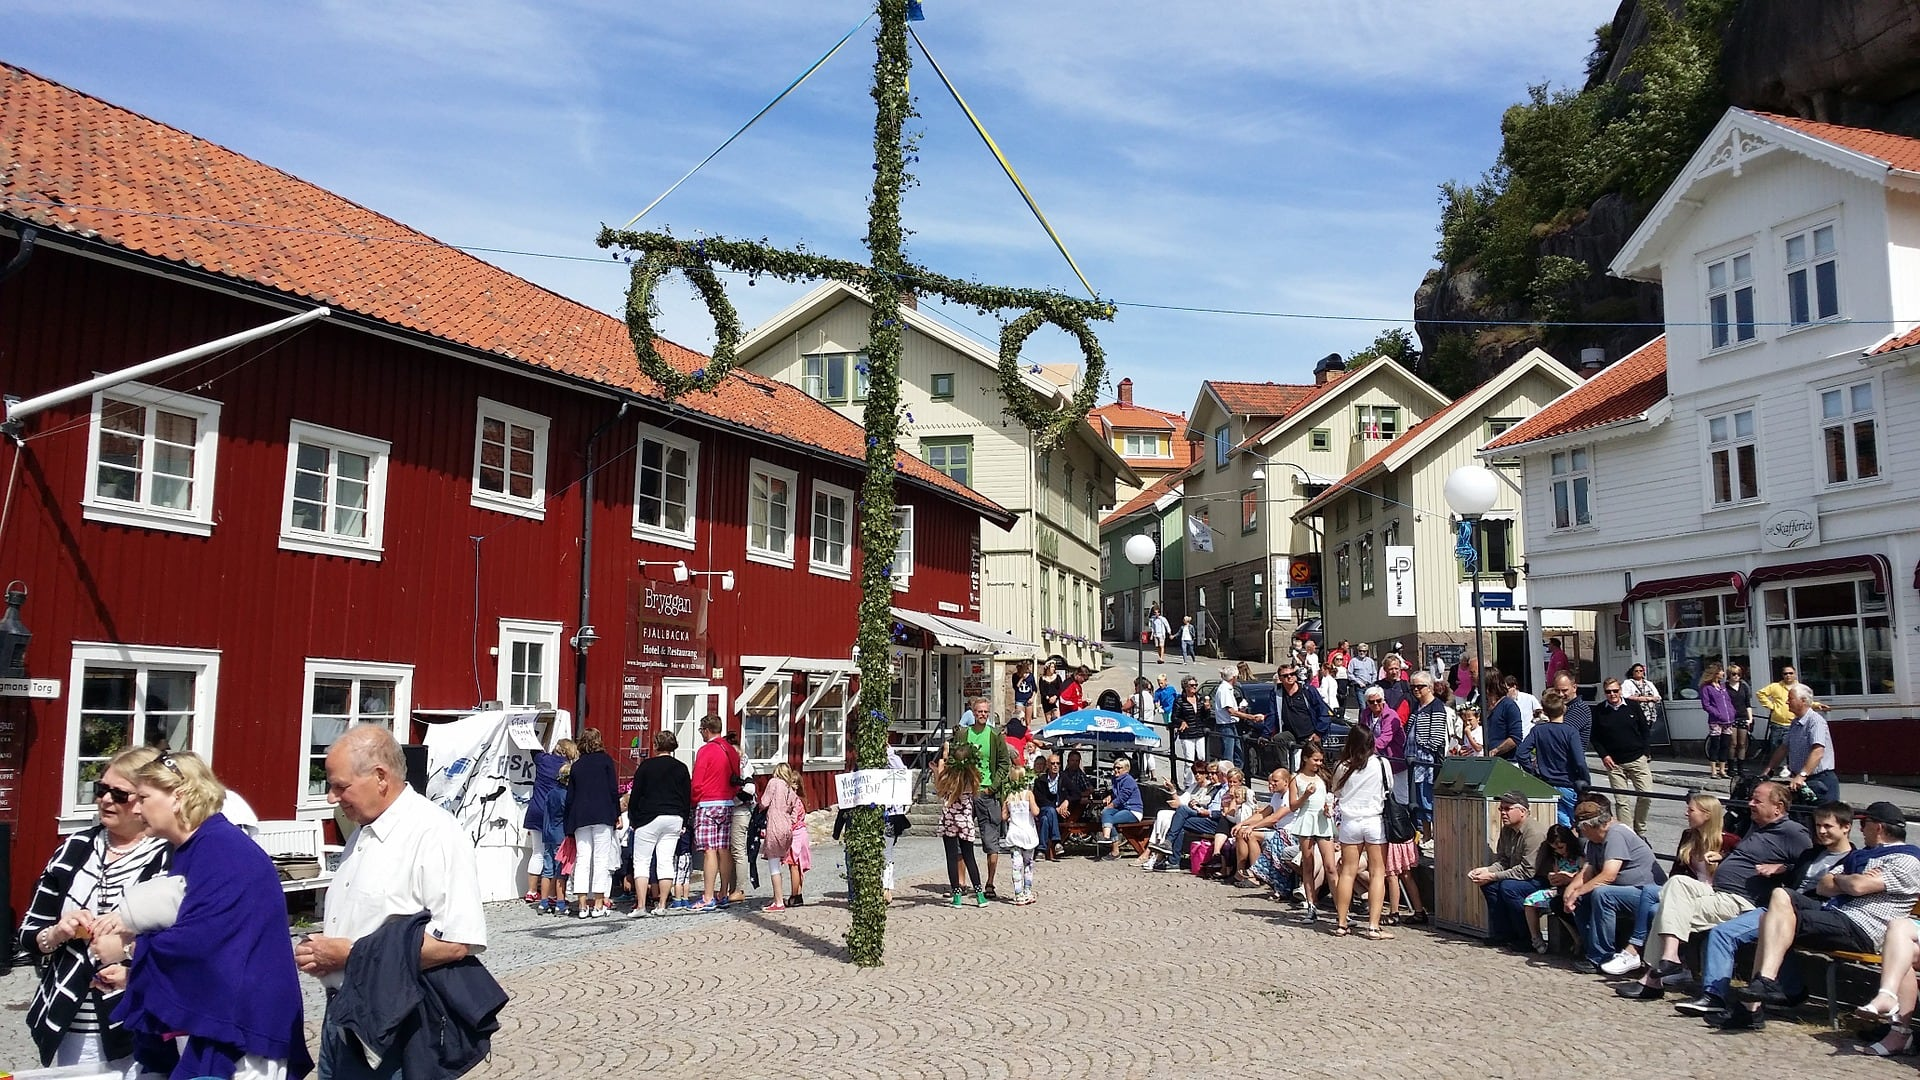 The view of the old part of the fishing village is characterized by the colorful wooden houses, the noise of the lively harbor and the 74 meter high, impressive and steep mountain Vetteberget.